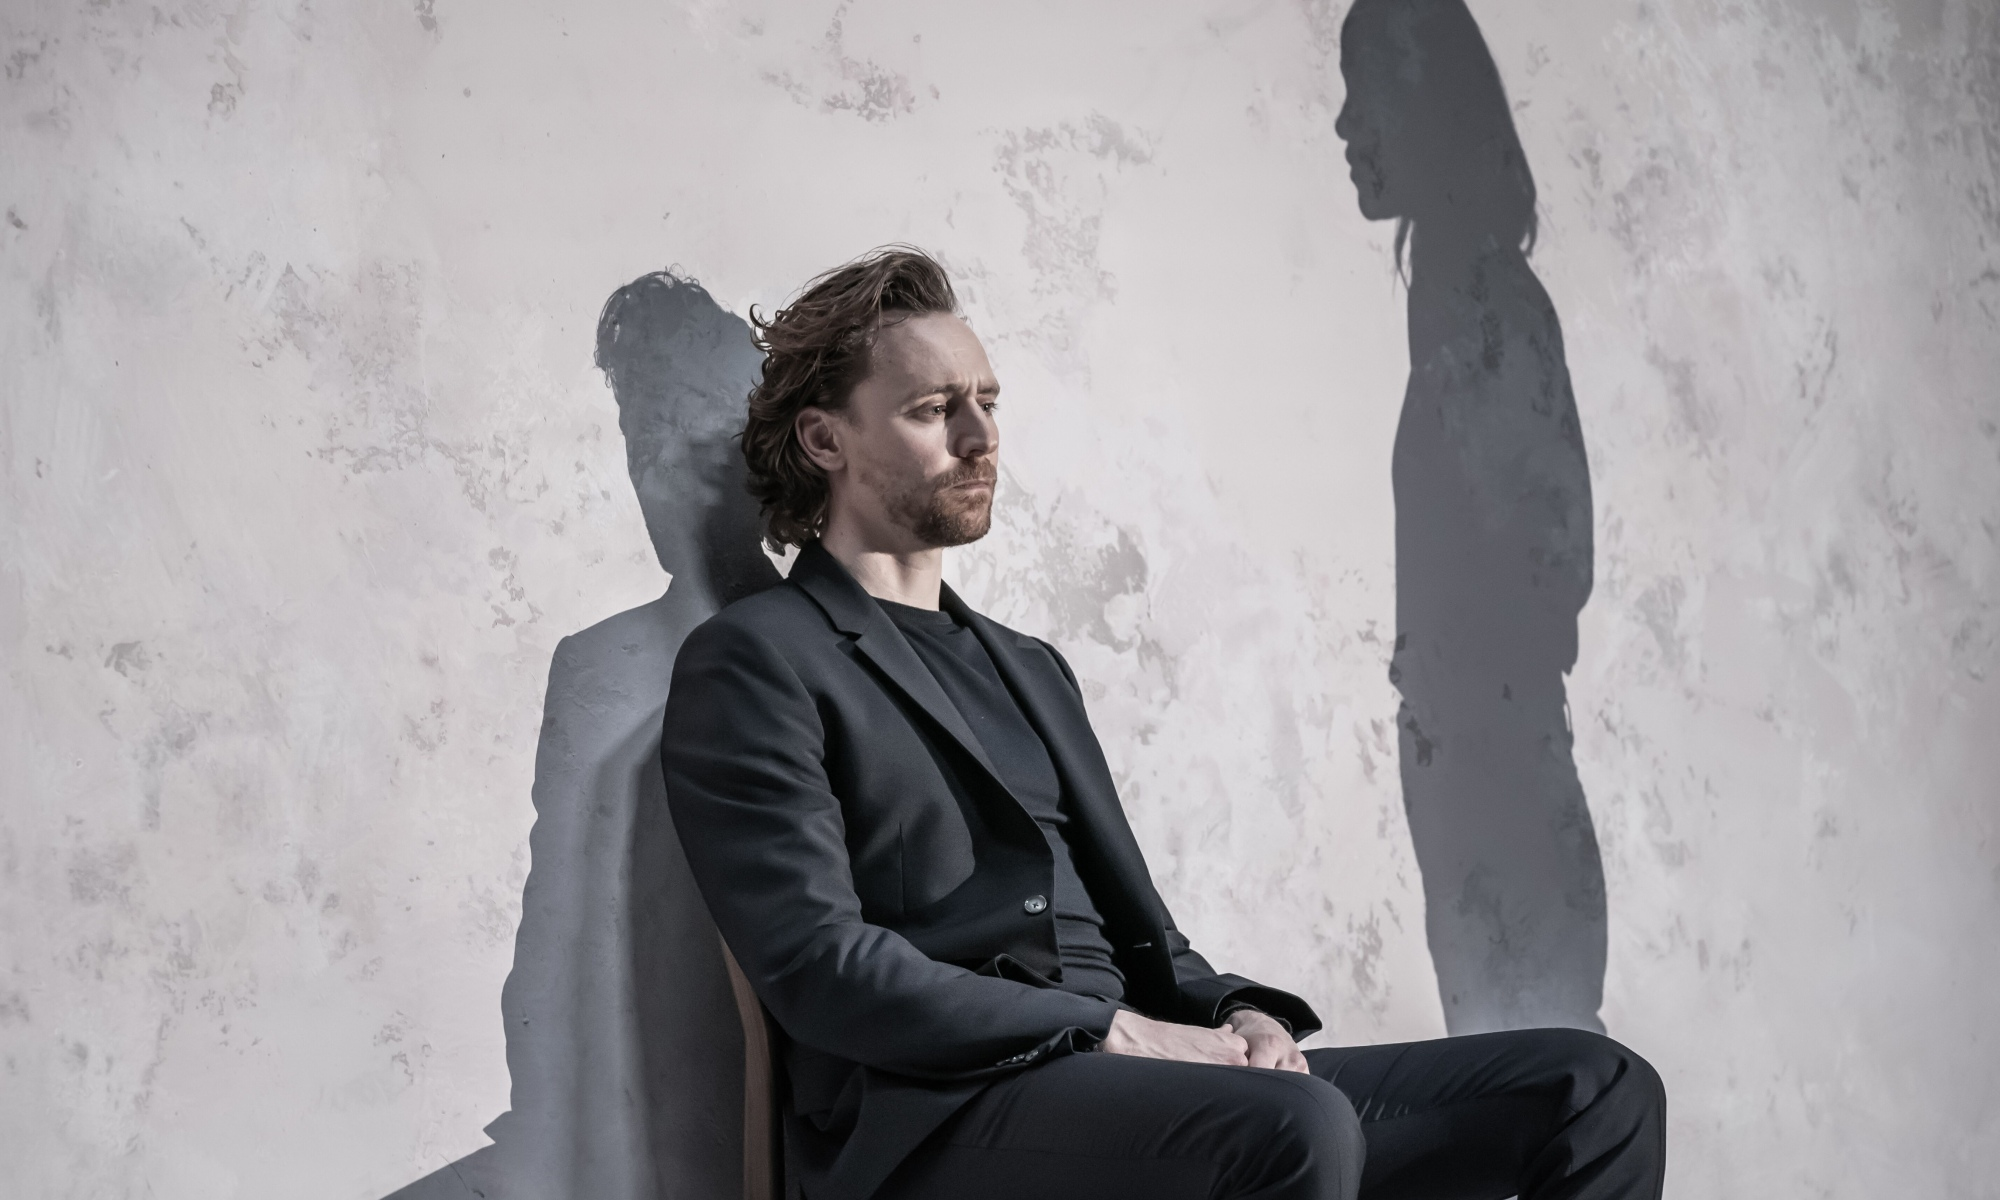 Tom Hiddleston has a neutral expression on his face as he sits on a chair against a stone wall. We can see his shadow, and to the right of this, the shadow of a woman.